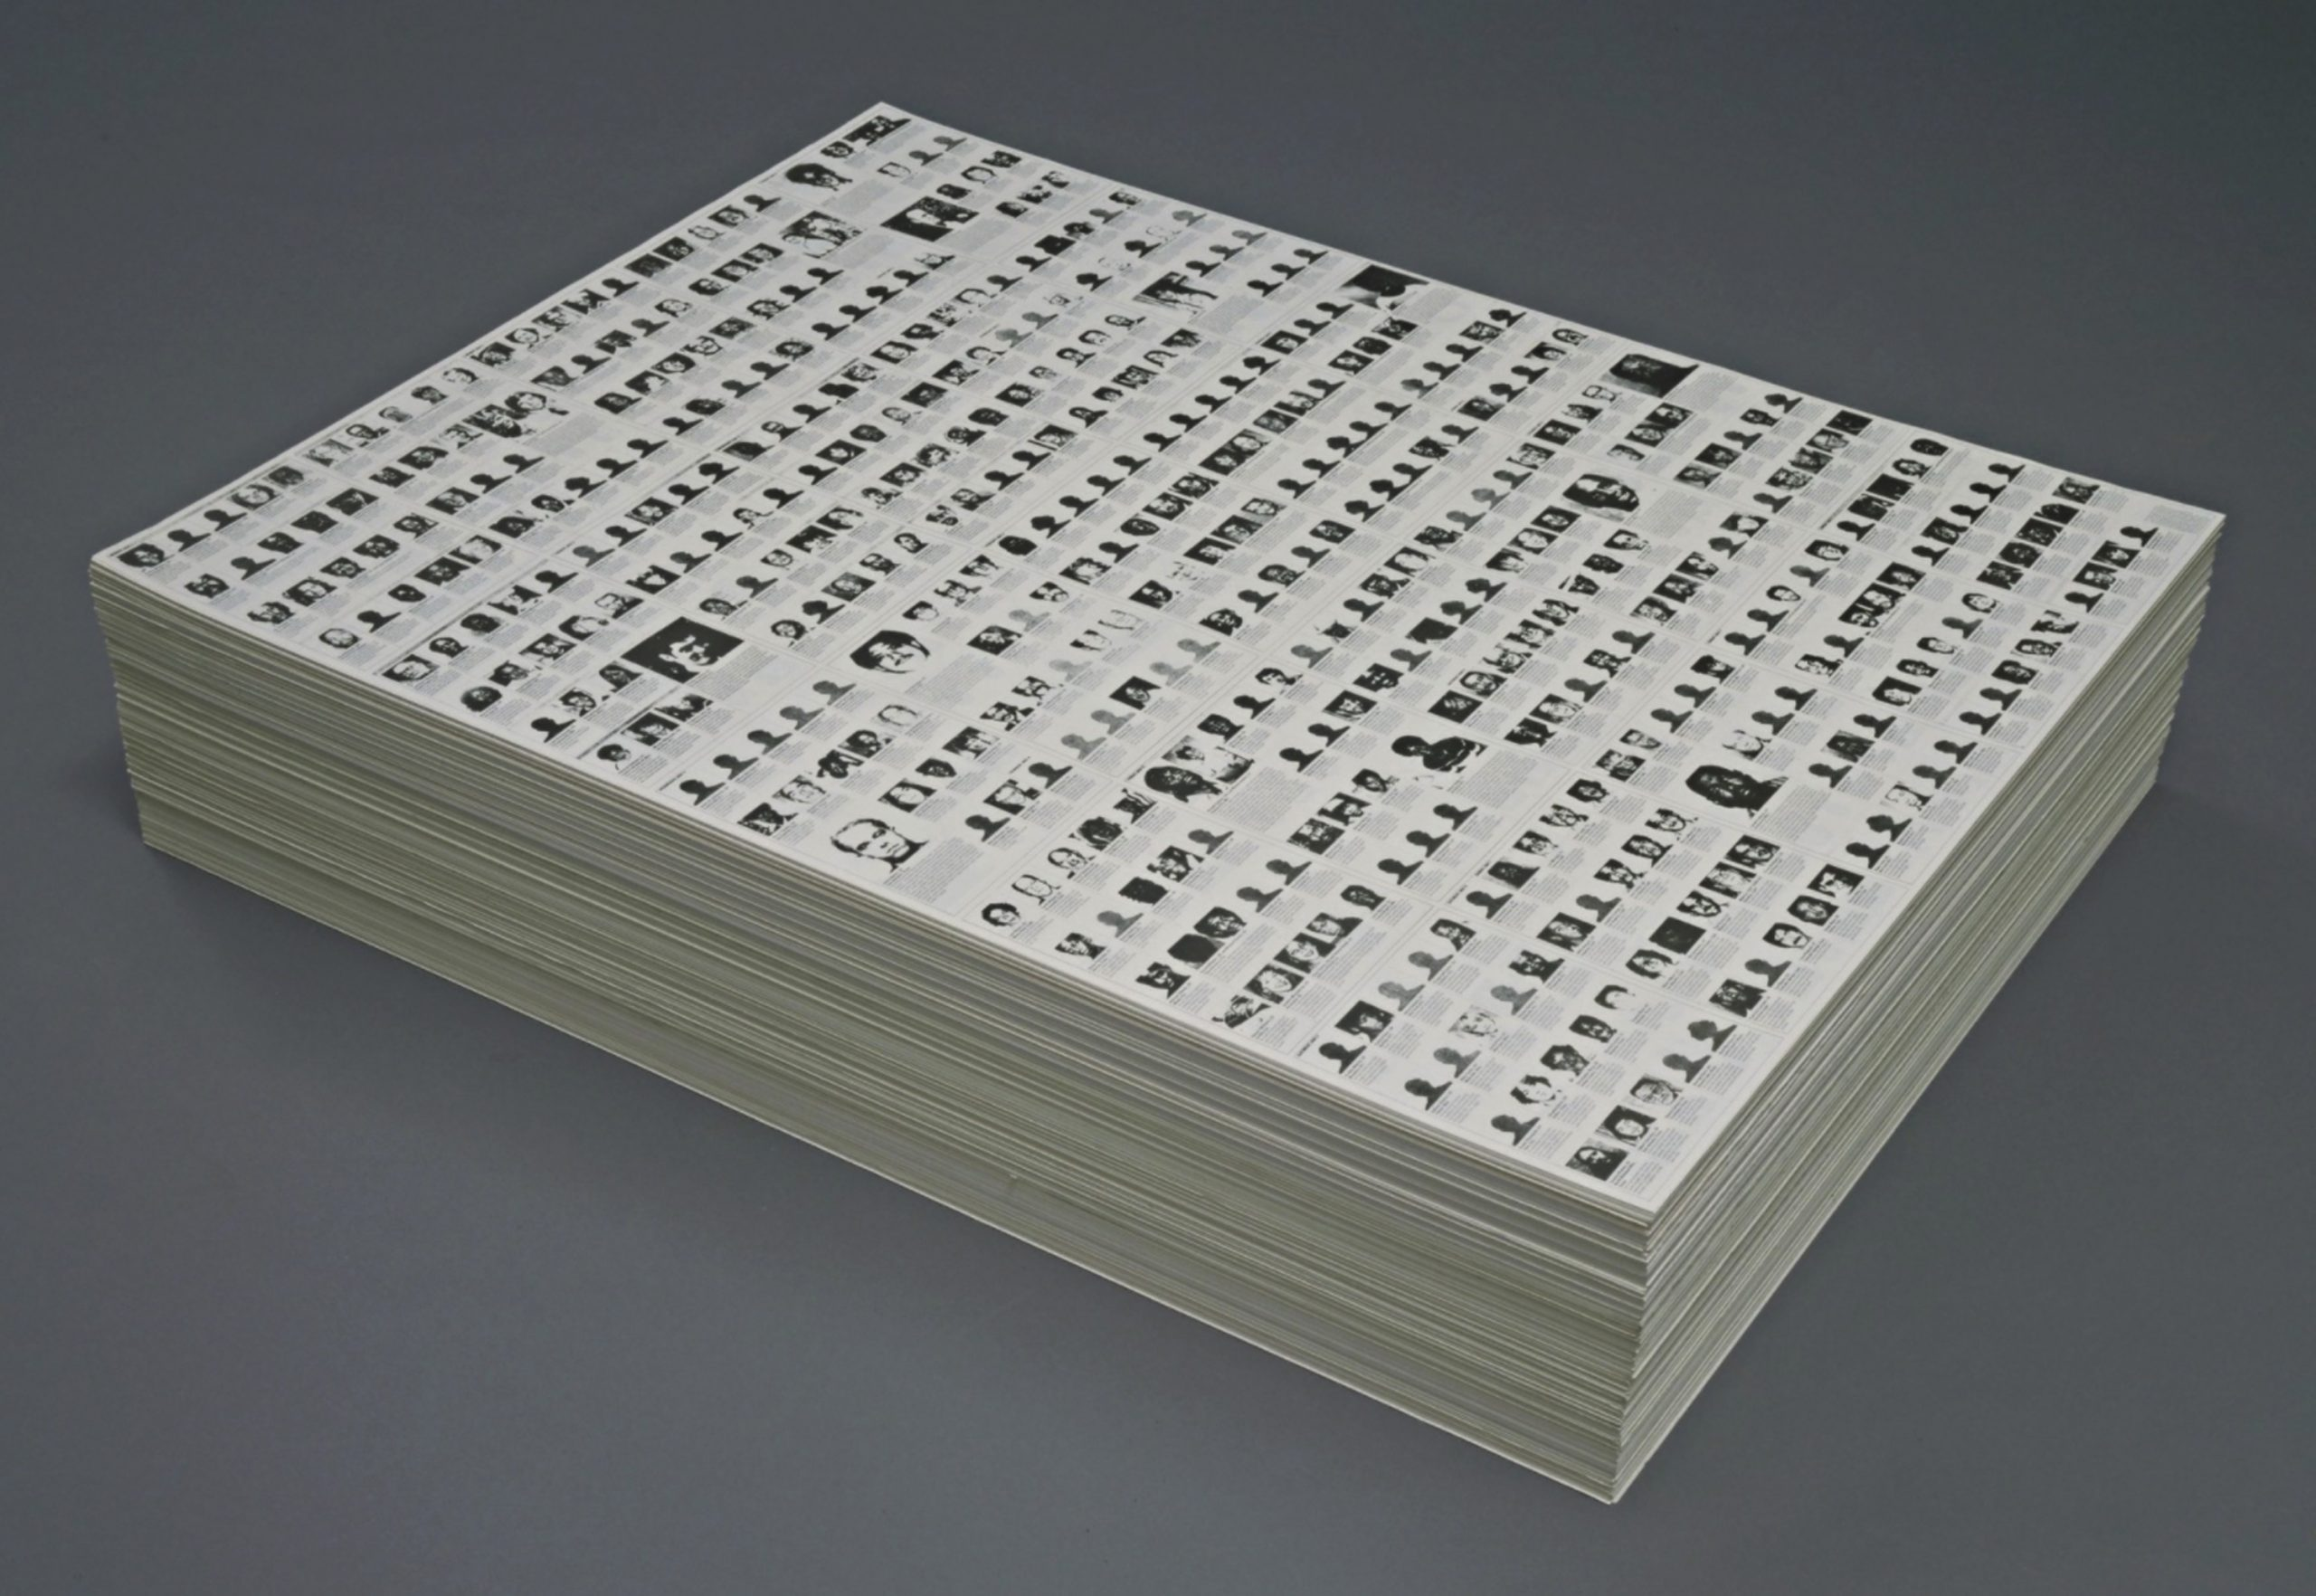 """Image: Felix Gonzalez-Torres,""""Untitled"""" (Death by Gun), 1990. Print on paper, endless copies. Courtesy of the Collection of The Museum of Modern Art New York, purchased in part with funds from Arthur Fleischer, Jr. and Linda Barth Goldstein. Visitors are welcome to take a piece of paper from the stack that displays images of the 460 victims of death by firearm in the U.S. during one week in May 1989."""